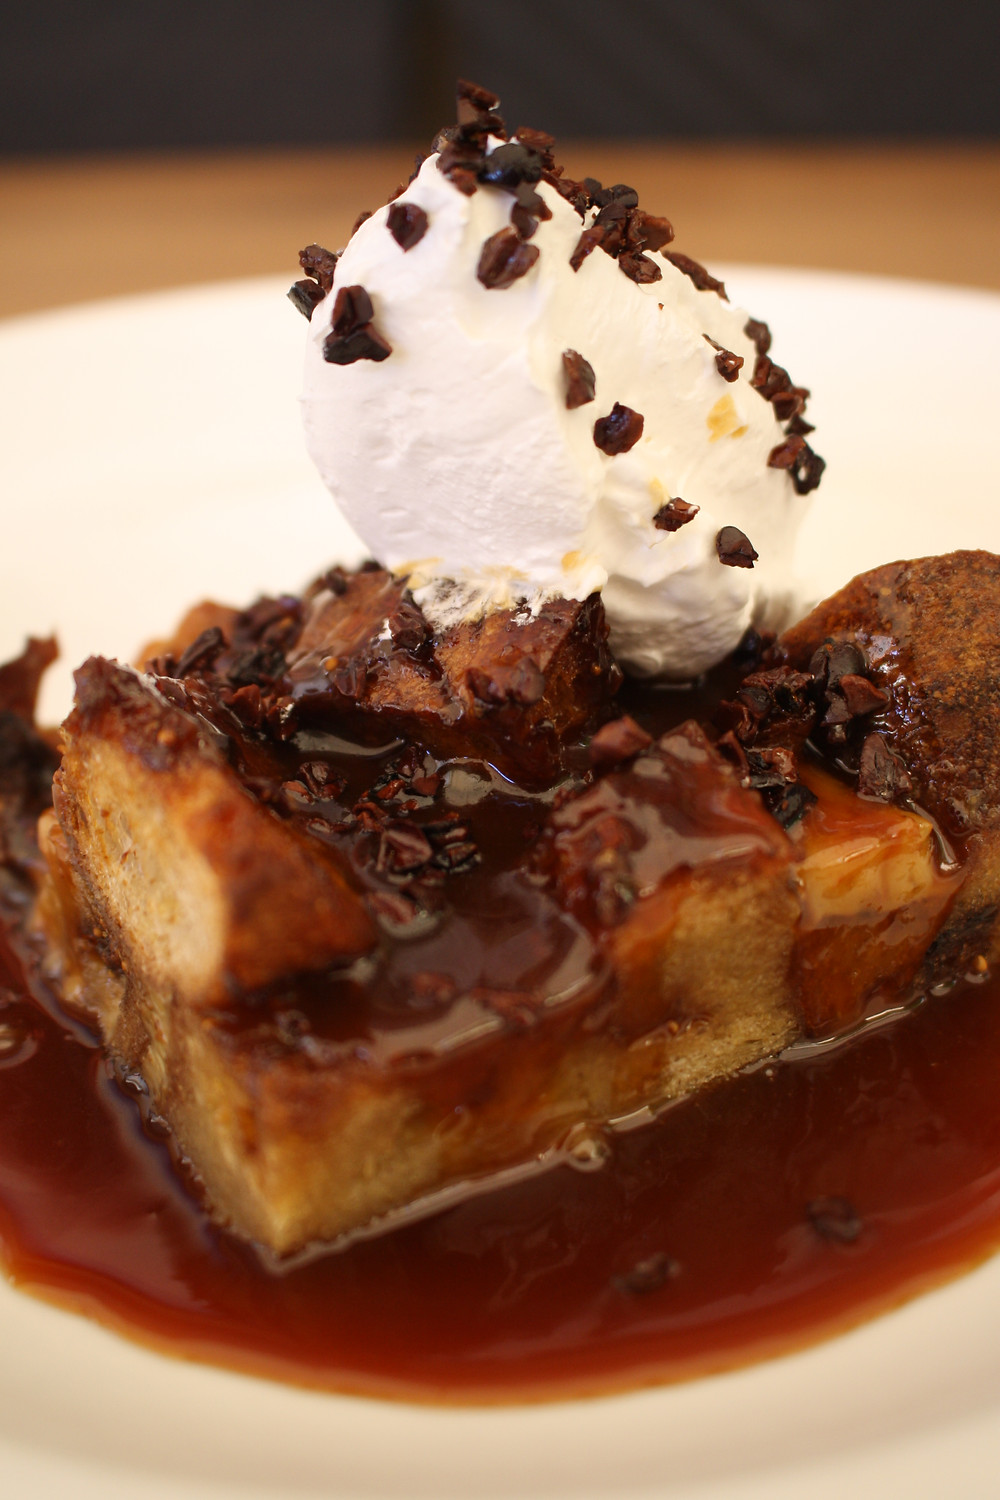 fig bread pudding salted caramel, vanilla chantilly, cocoa nibs